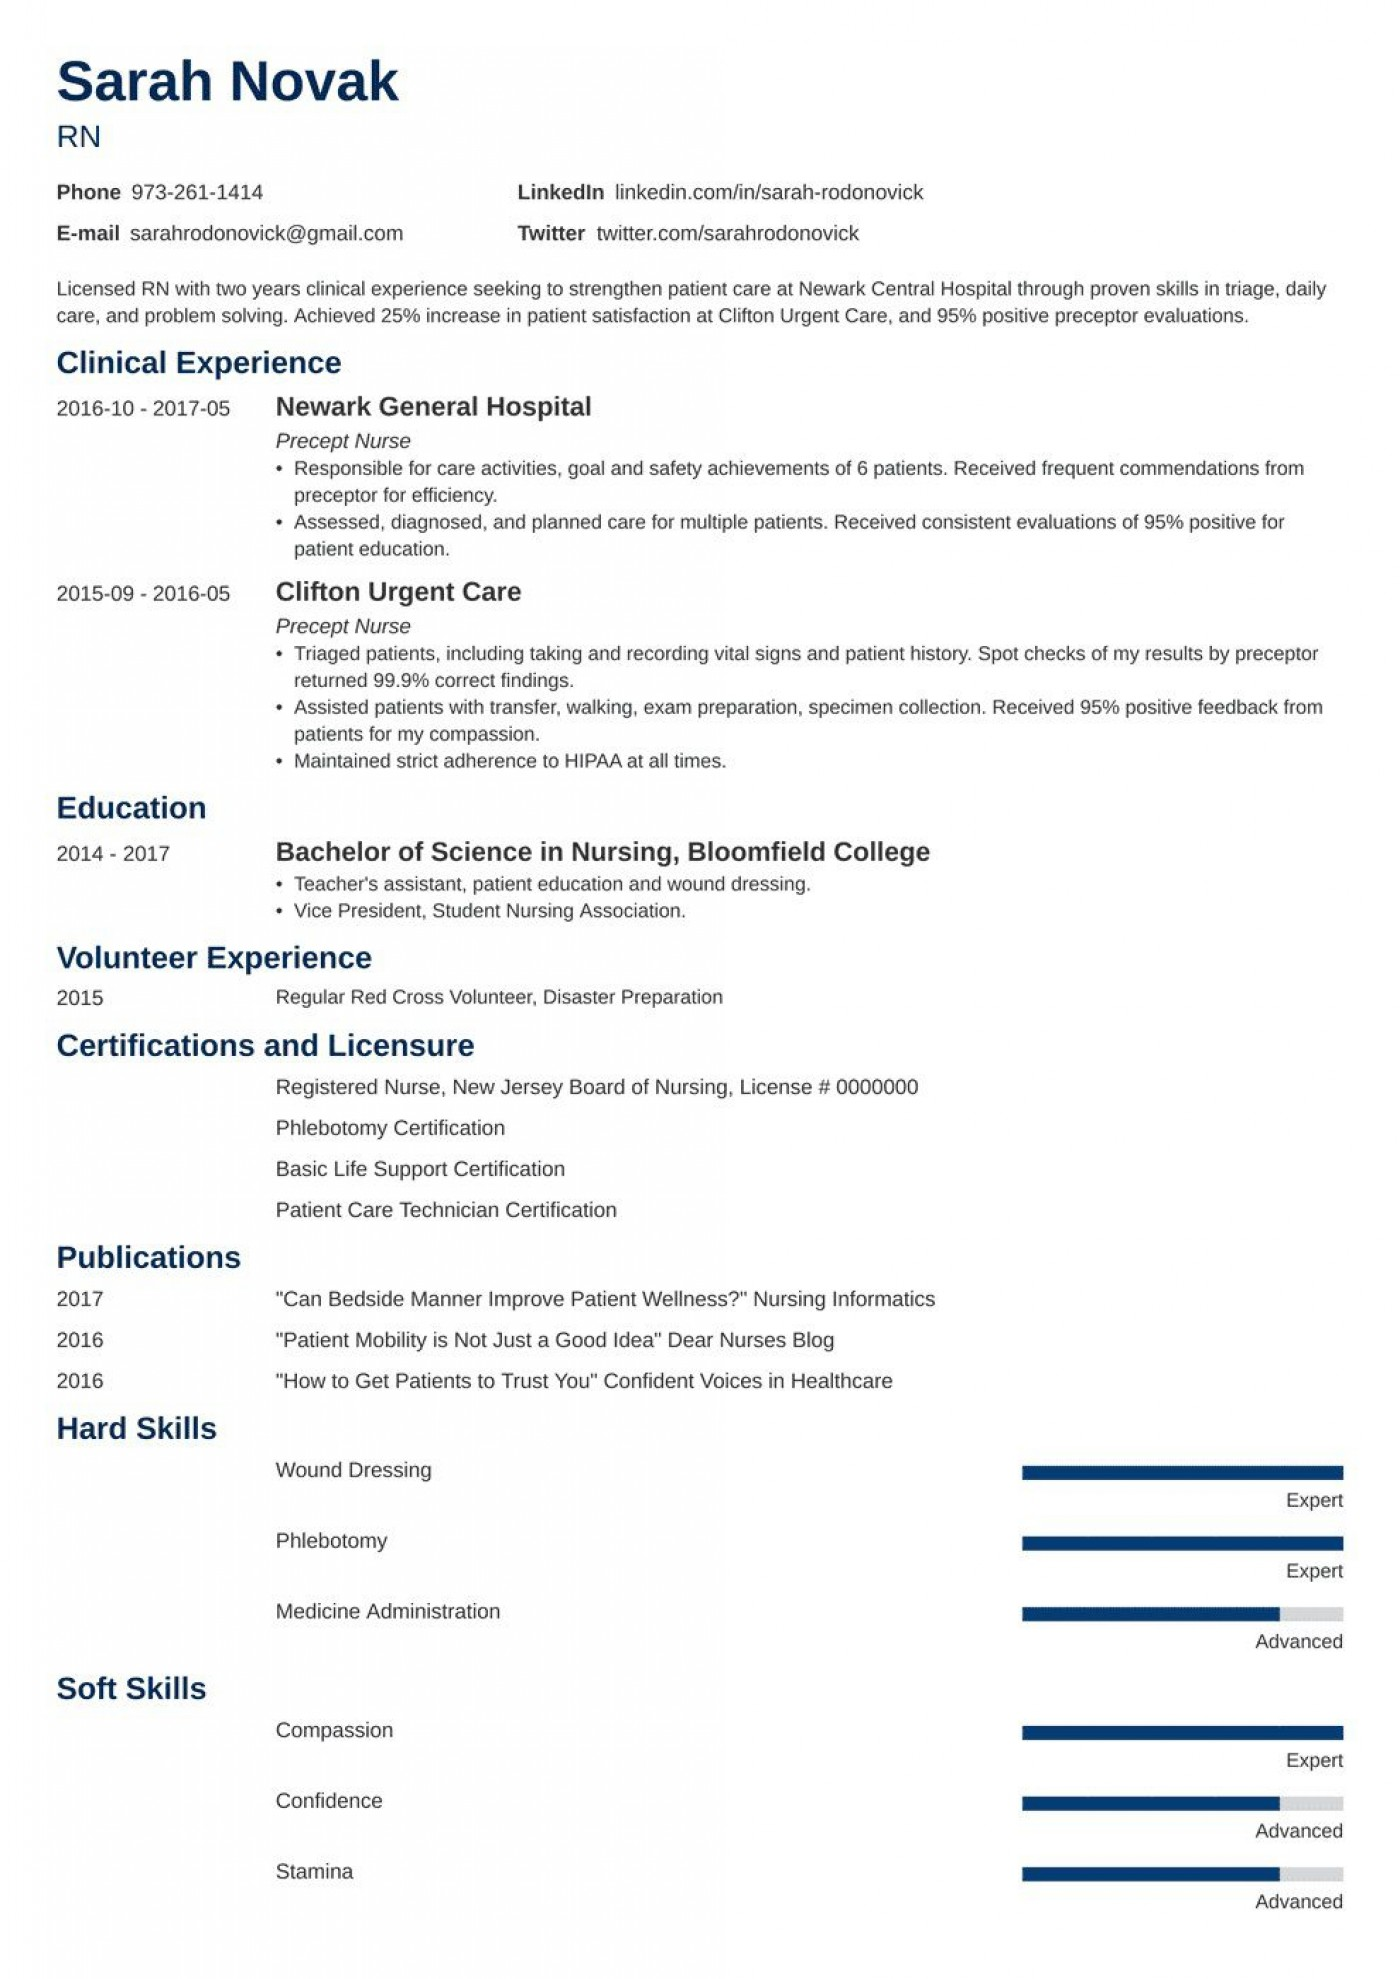 008 Impressive New Grad Nursing Resume Template Example  Graduate Nurse Practitioner1400